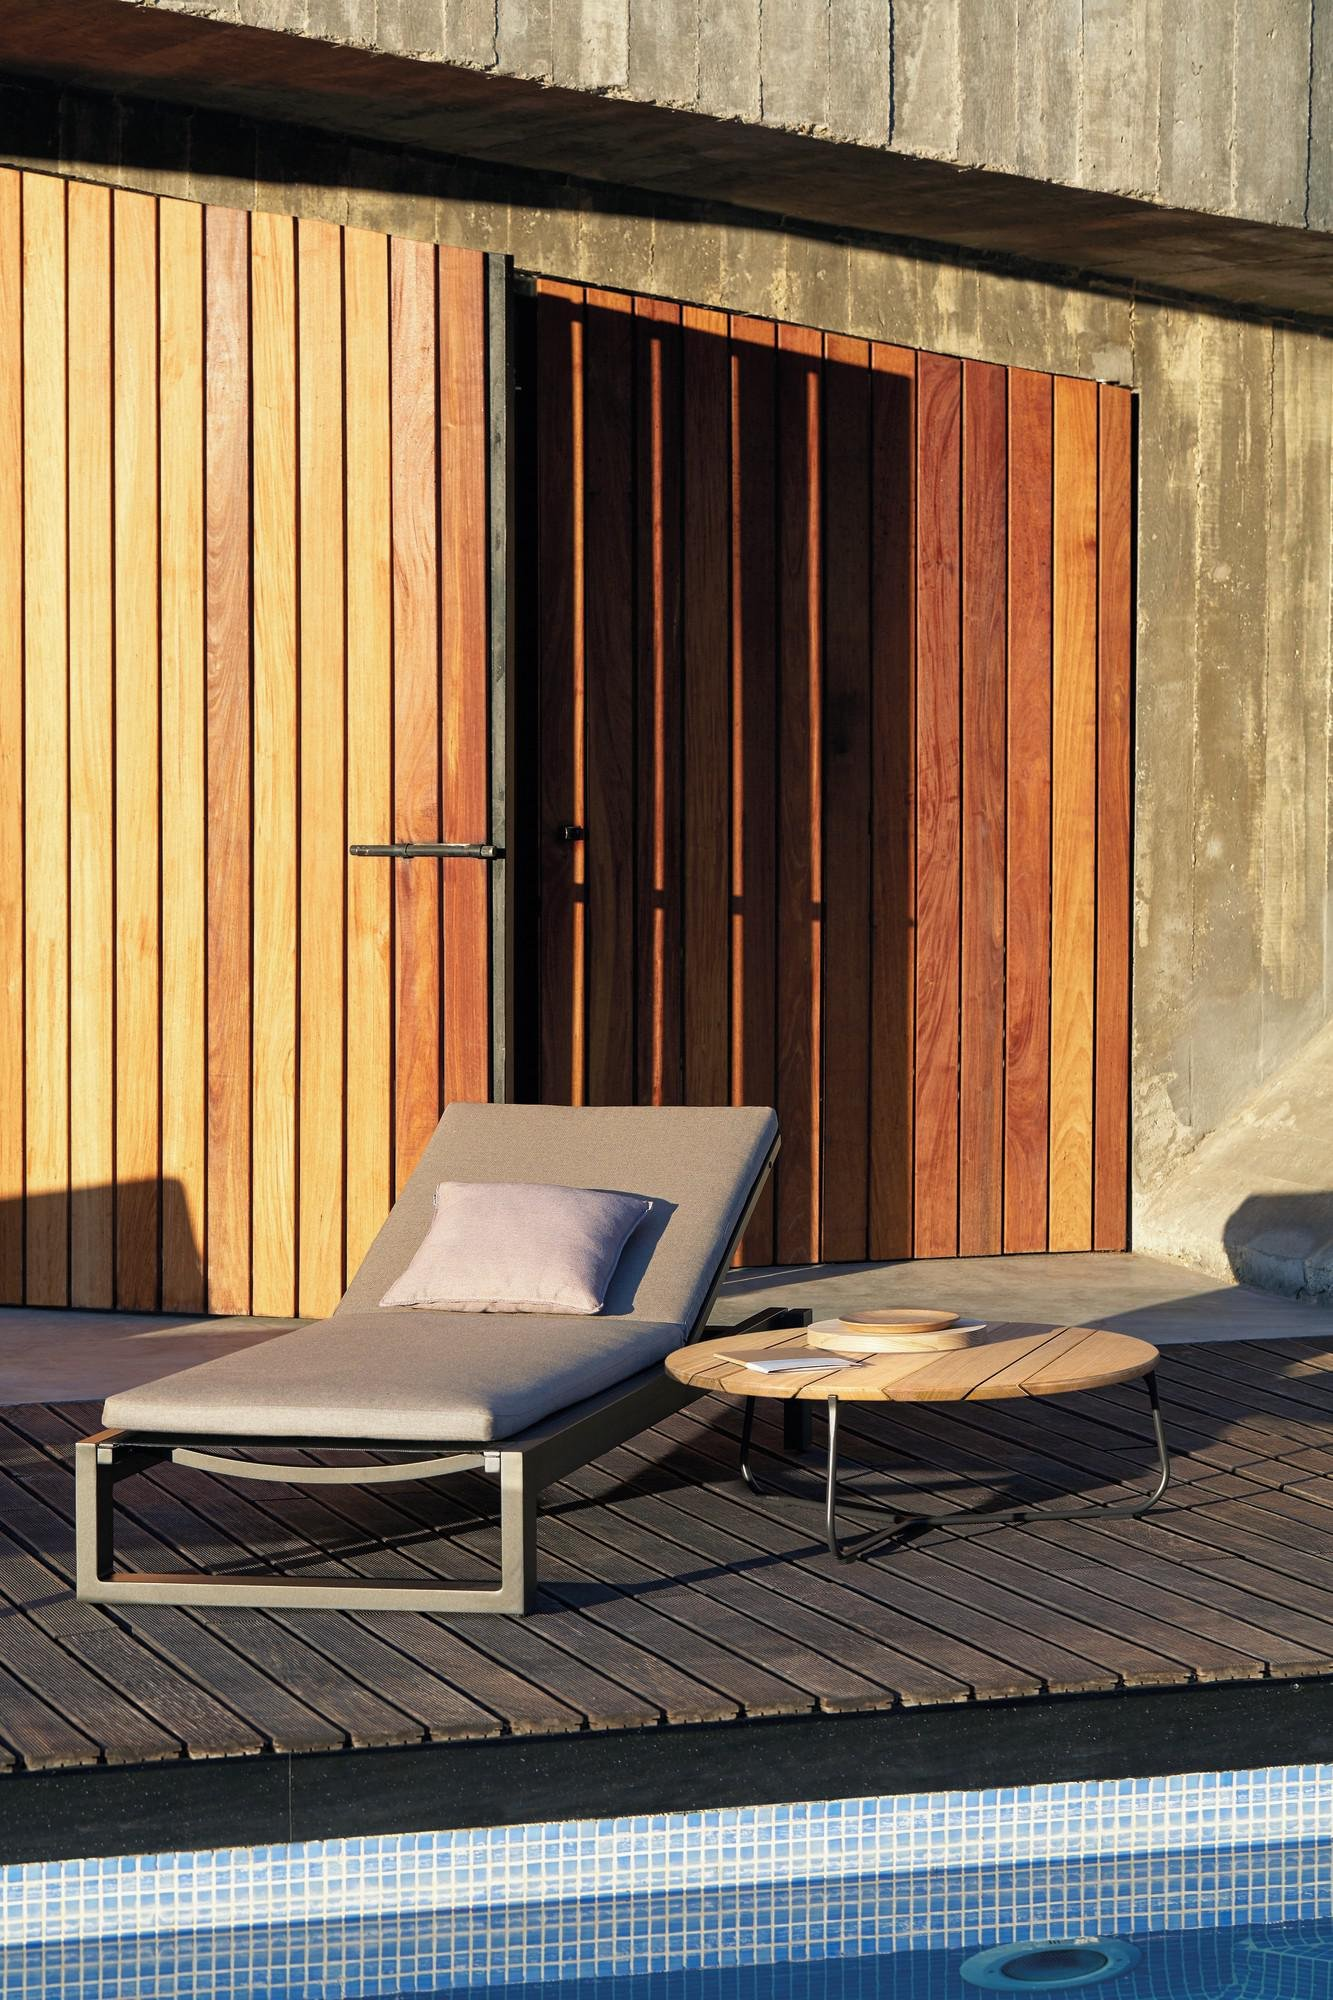 Fuse Lounger from Manutti, designed by Stephane De Winter